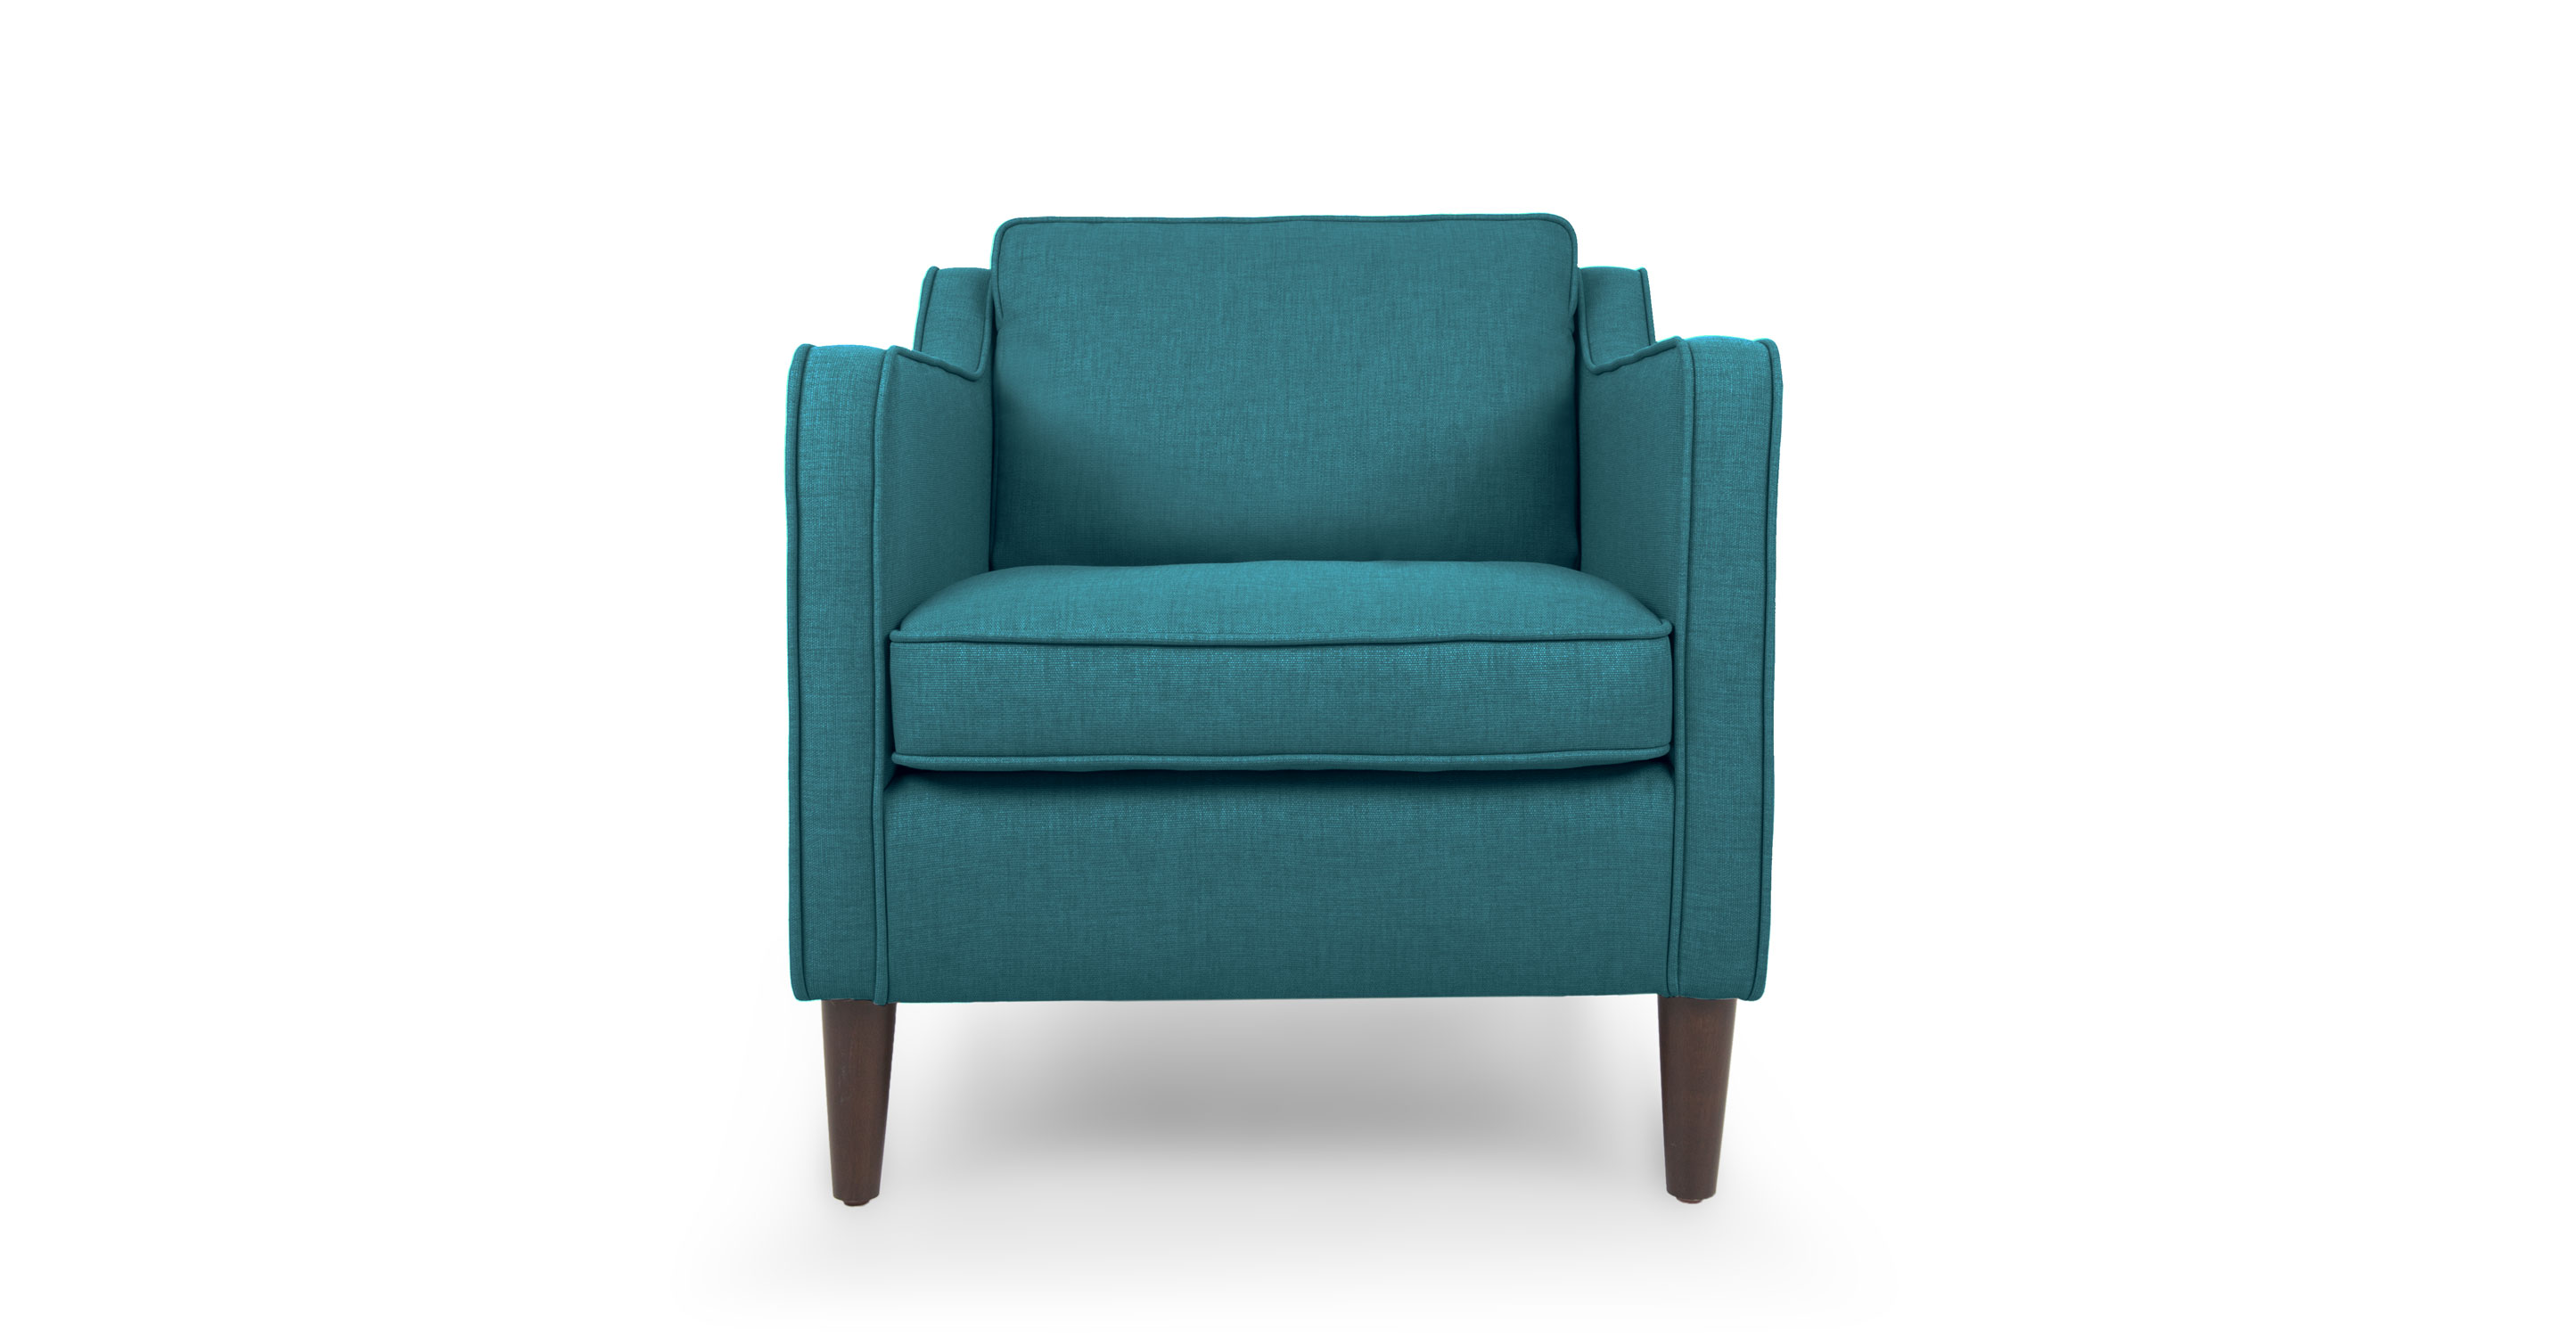 Cherie Ocean Teal Armchair Lounge Chairs Article Modern Mid